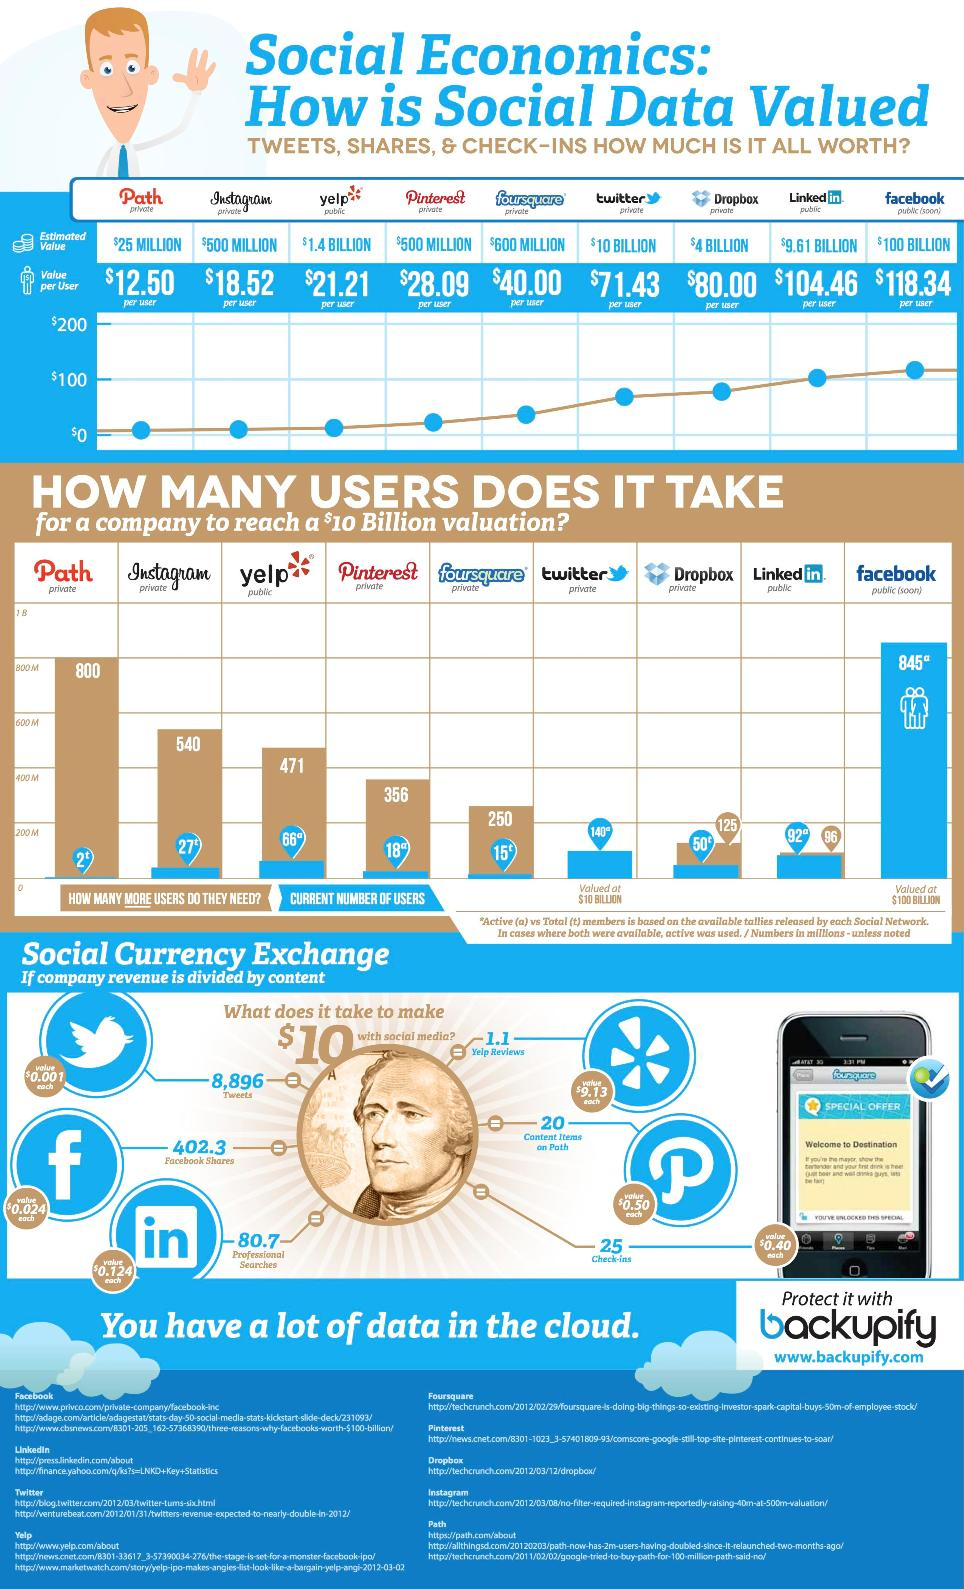 Backupify-Social-Data-Infographic-